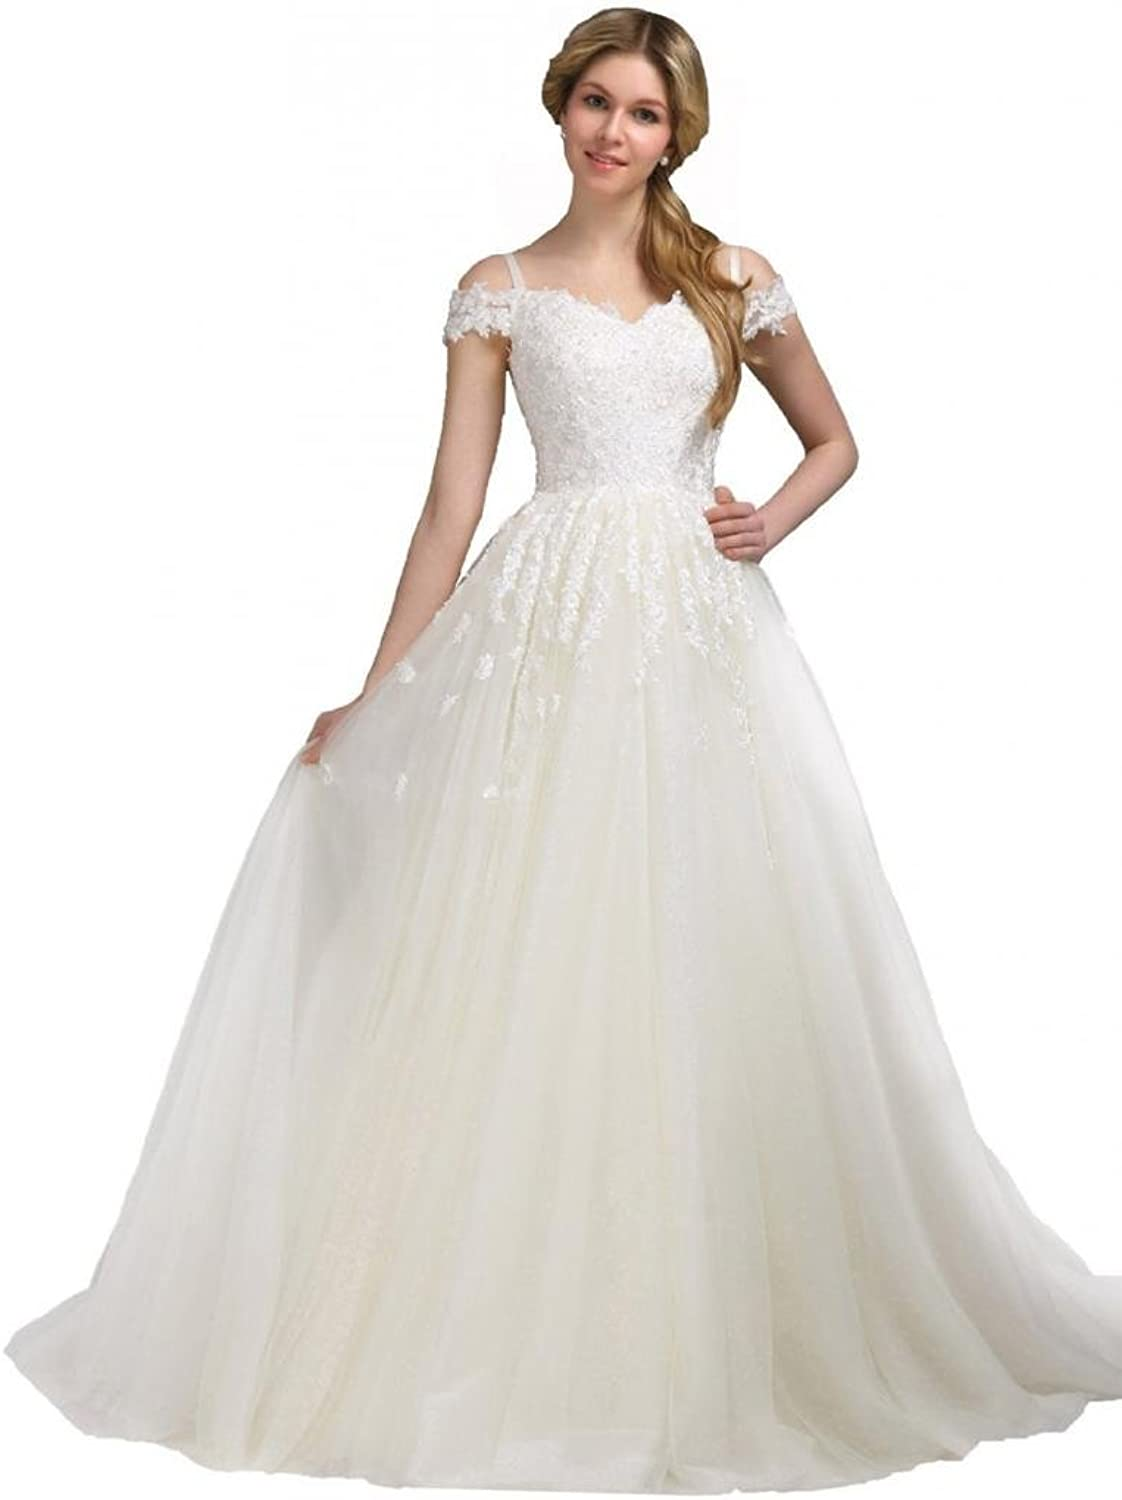 Dearta Women's ALine OffTheShoulder Portrait Court Train Wedding Dresses